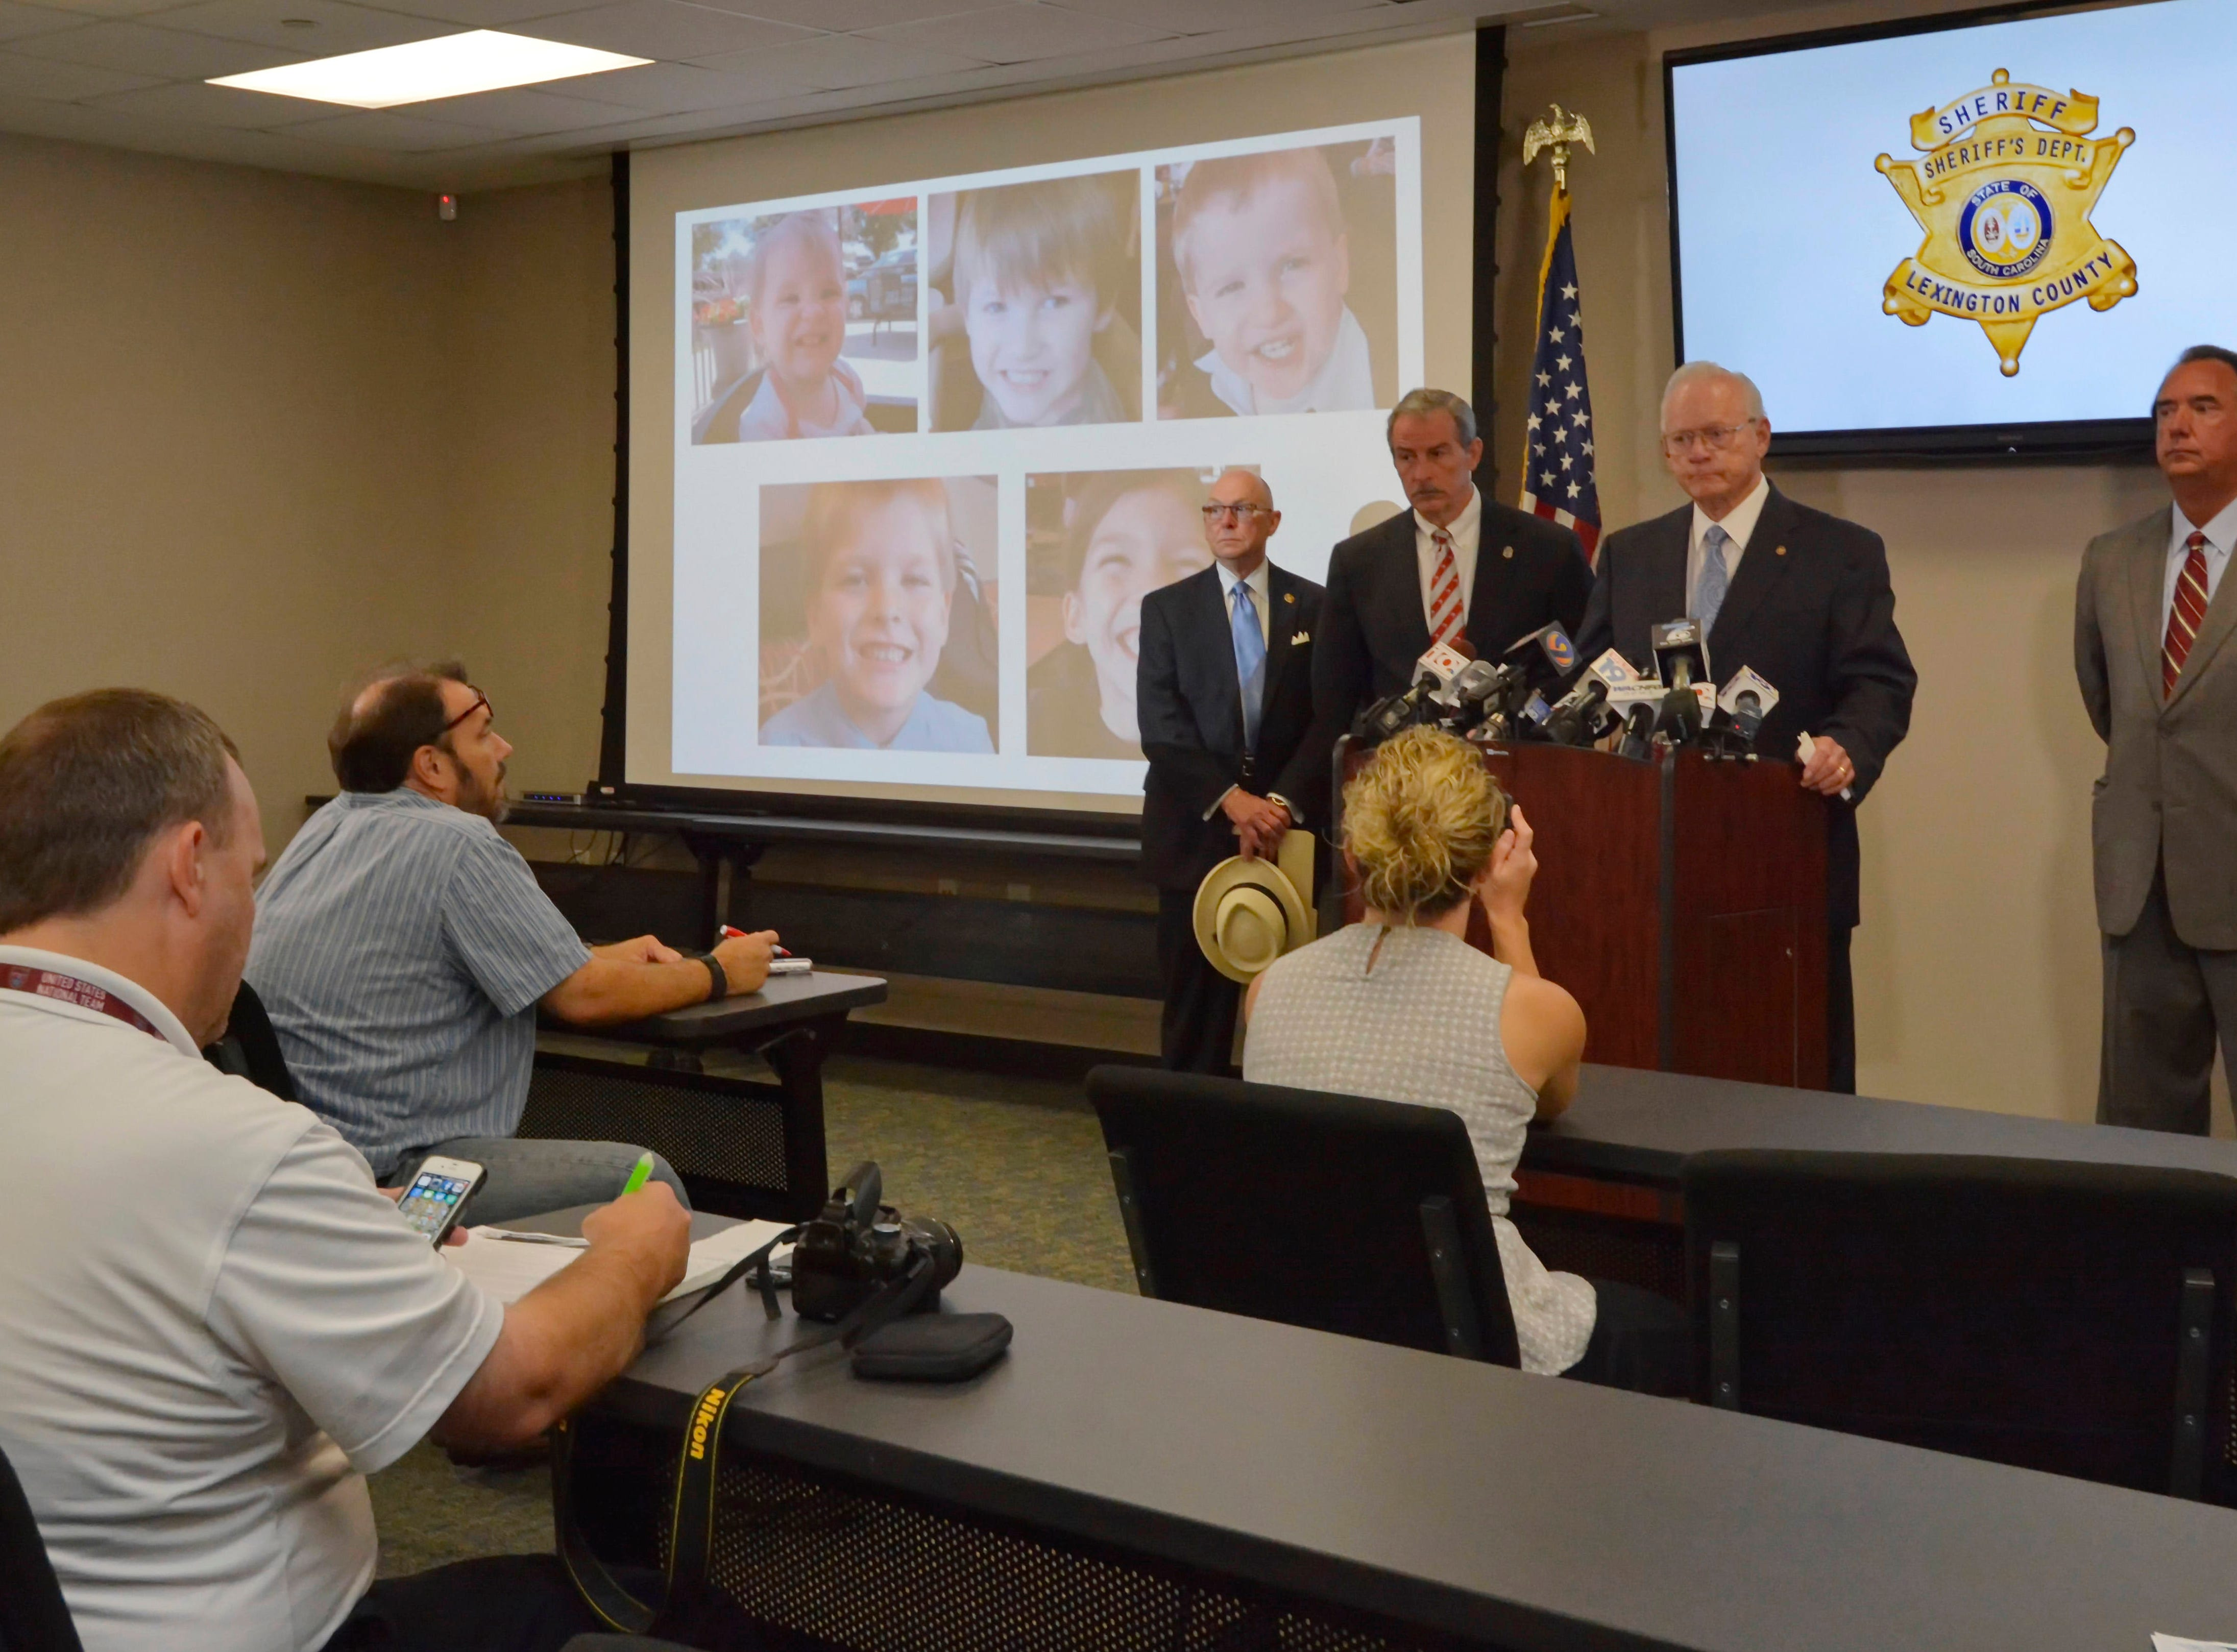 Sheriff McCarty addresses the media during a news conference at the Lexington County Sheriff's Dept Training Center in Lexington, S.C., Wednesday, Sept. 10, 2014.  Timothy Ray Jones Jr., 32, will be charged with murder in the deaths of his five children after he led authorities to a secluded clearing in Alabama, where their bodies were found wrapped in garbage bags, McCarty said Wednesday.  (AP Photo/ Richard Shiro)